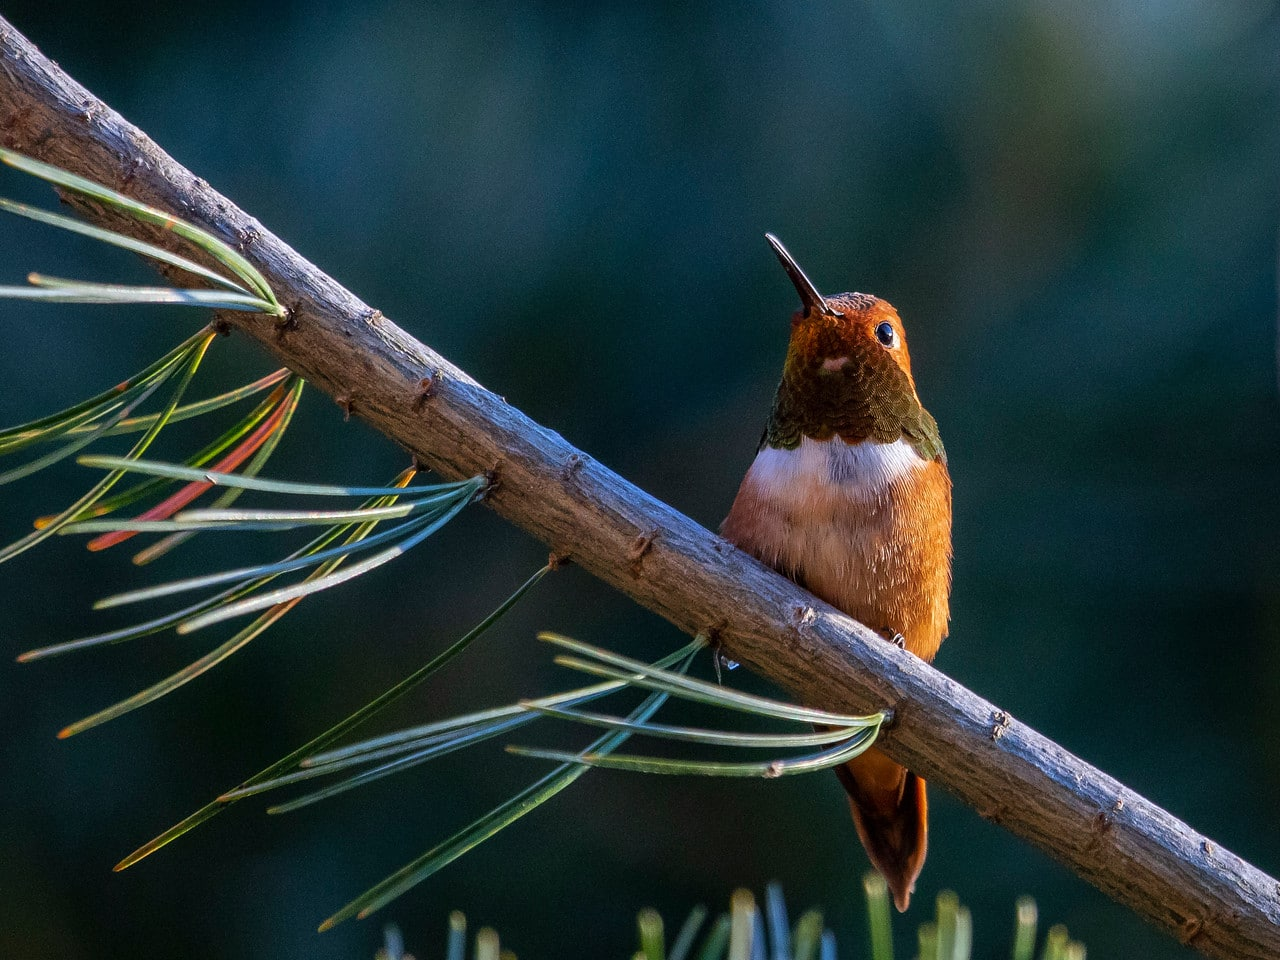 Rufous Humming Bird Resting on Otters Pond Pine